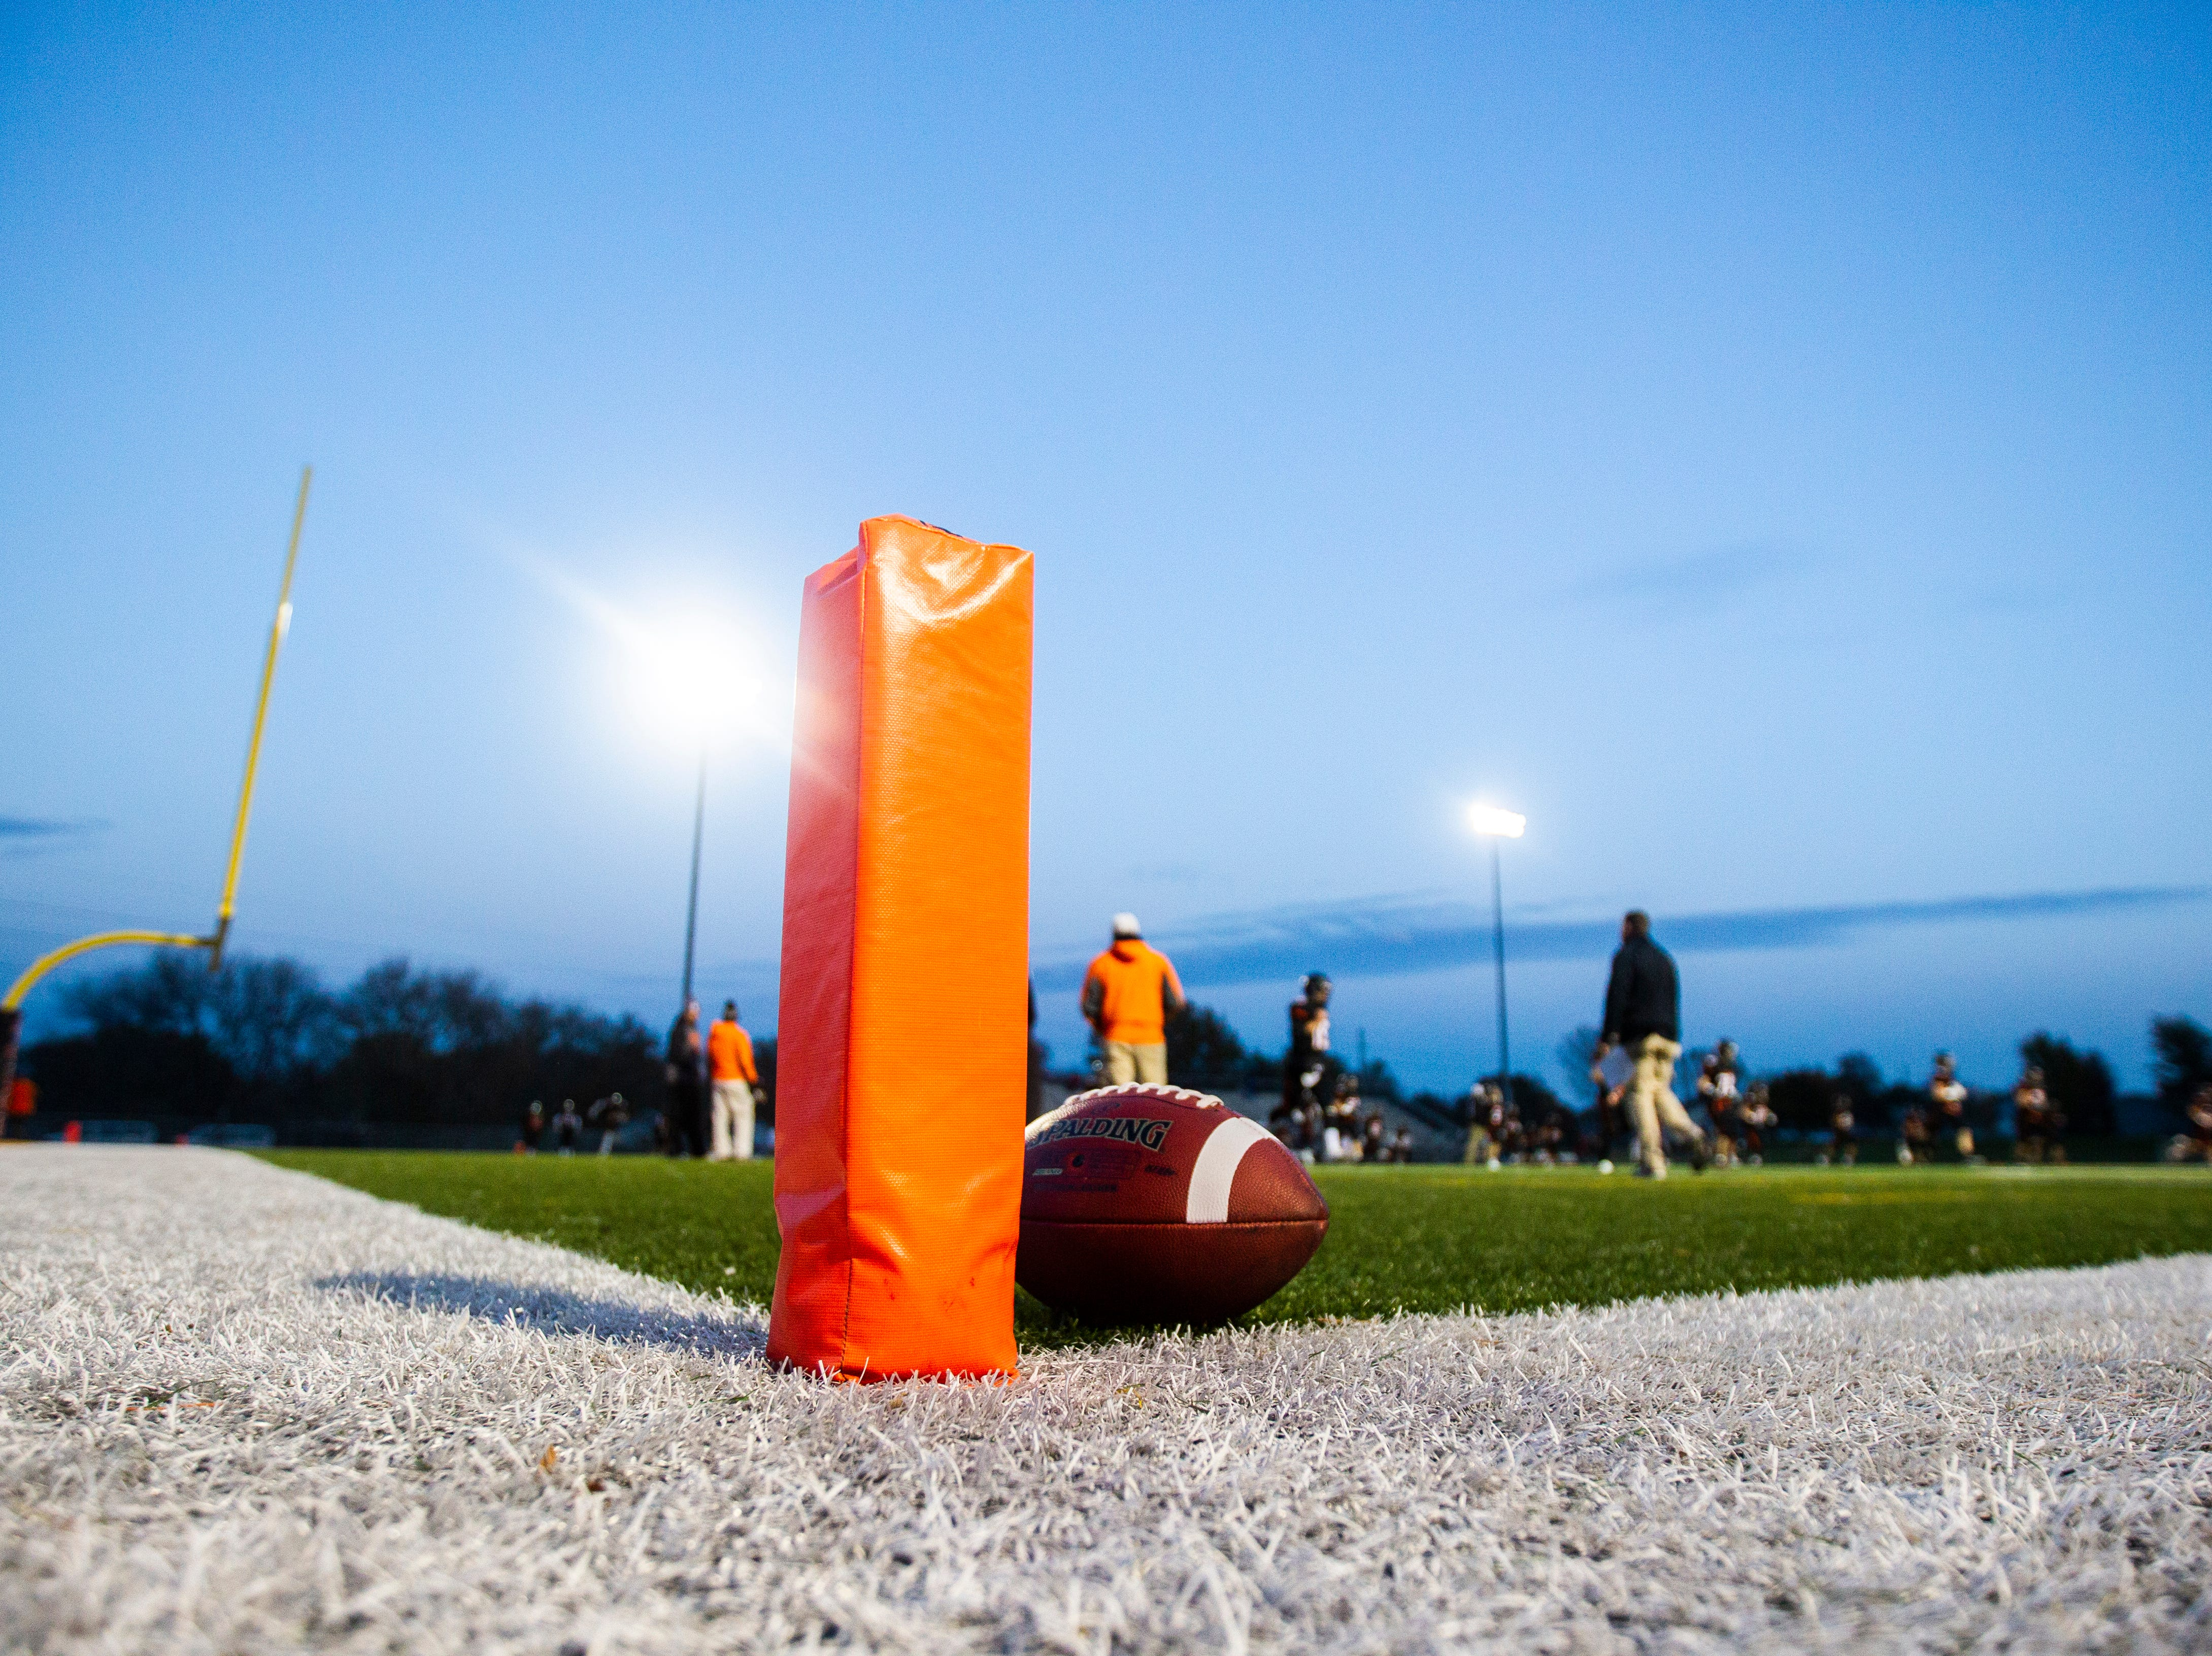 Solon players warm up before a Class 3A varsity first round playoff football game on Friday, Oct. 26, 2018, at Spartan Stadium in Solon, Iowa.